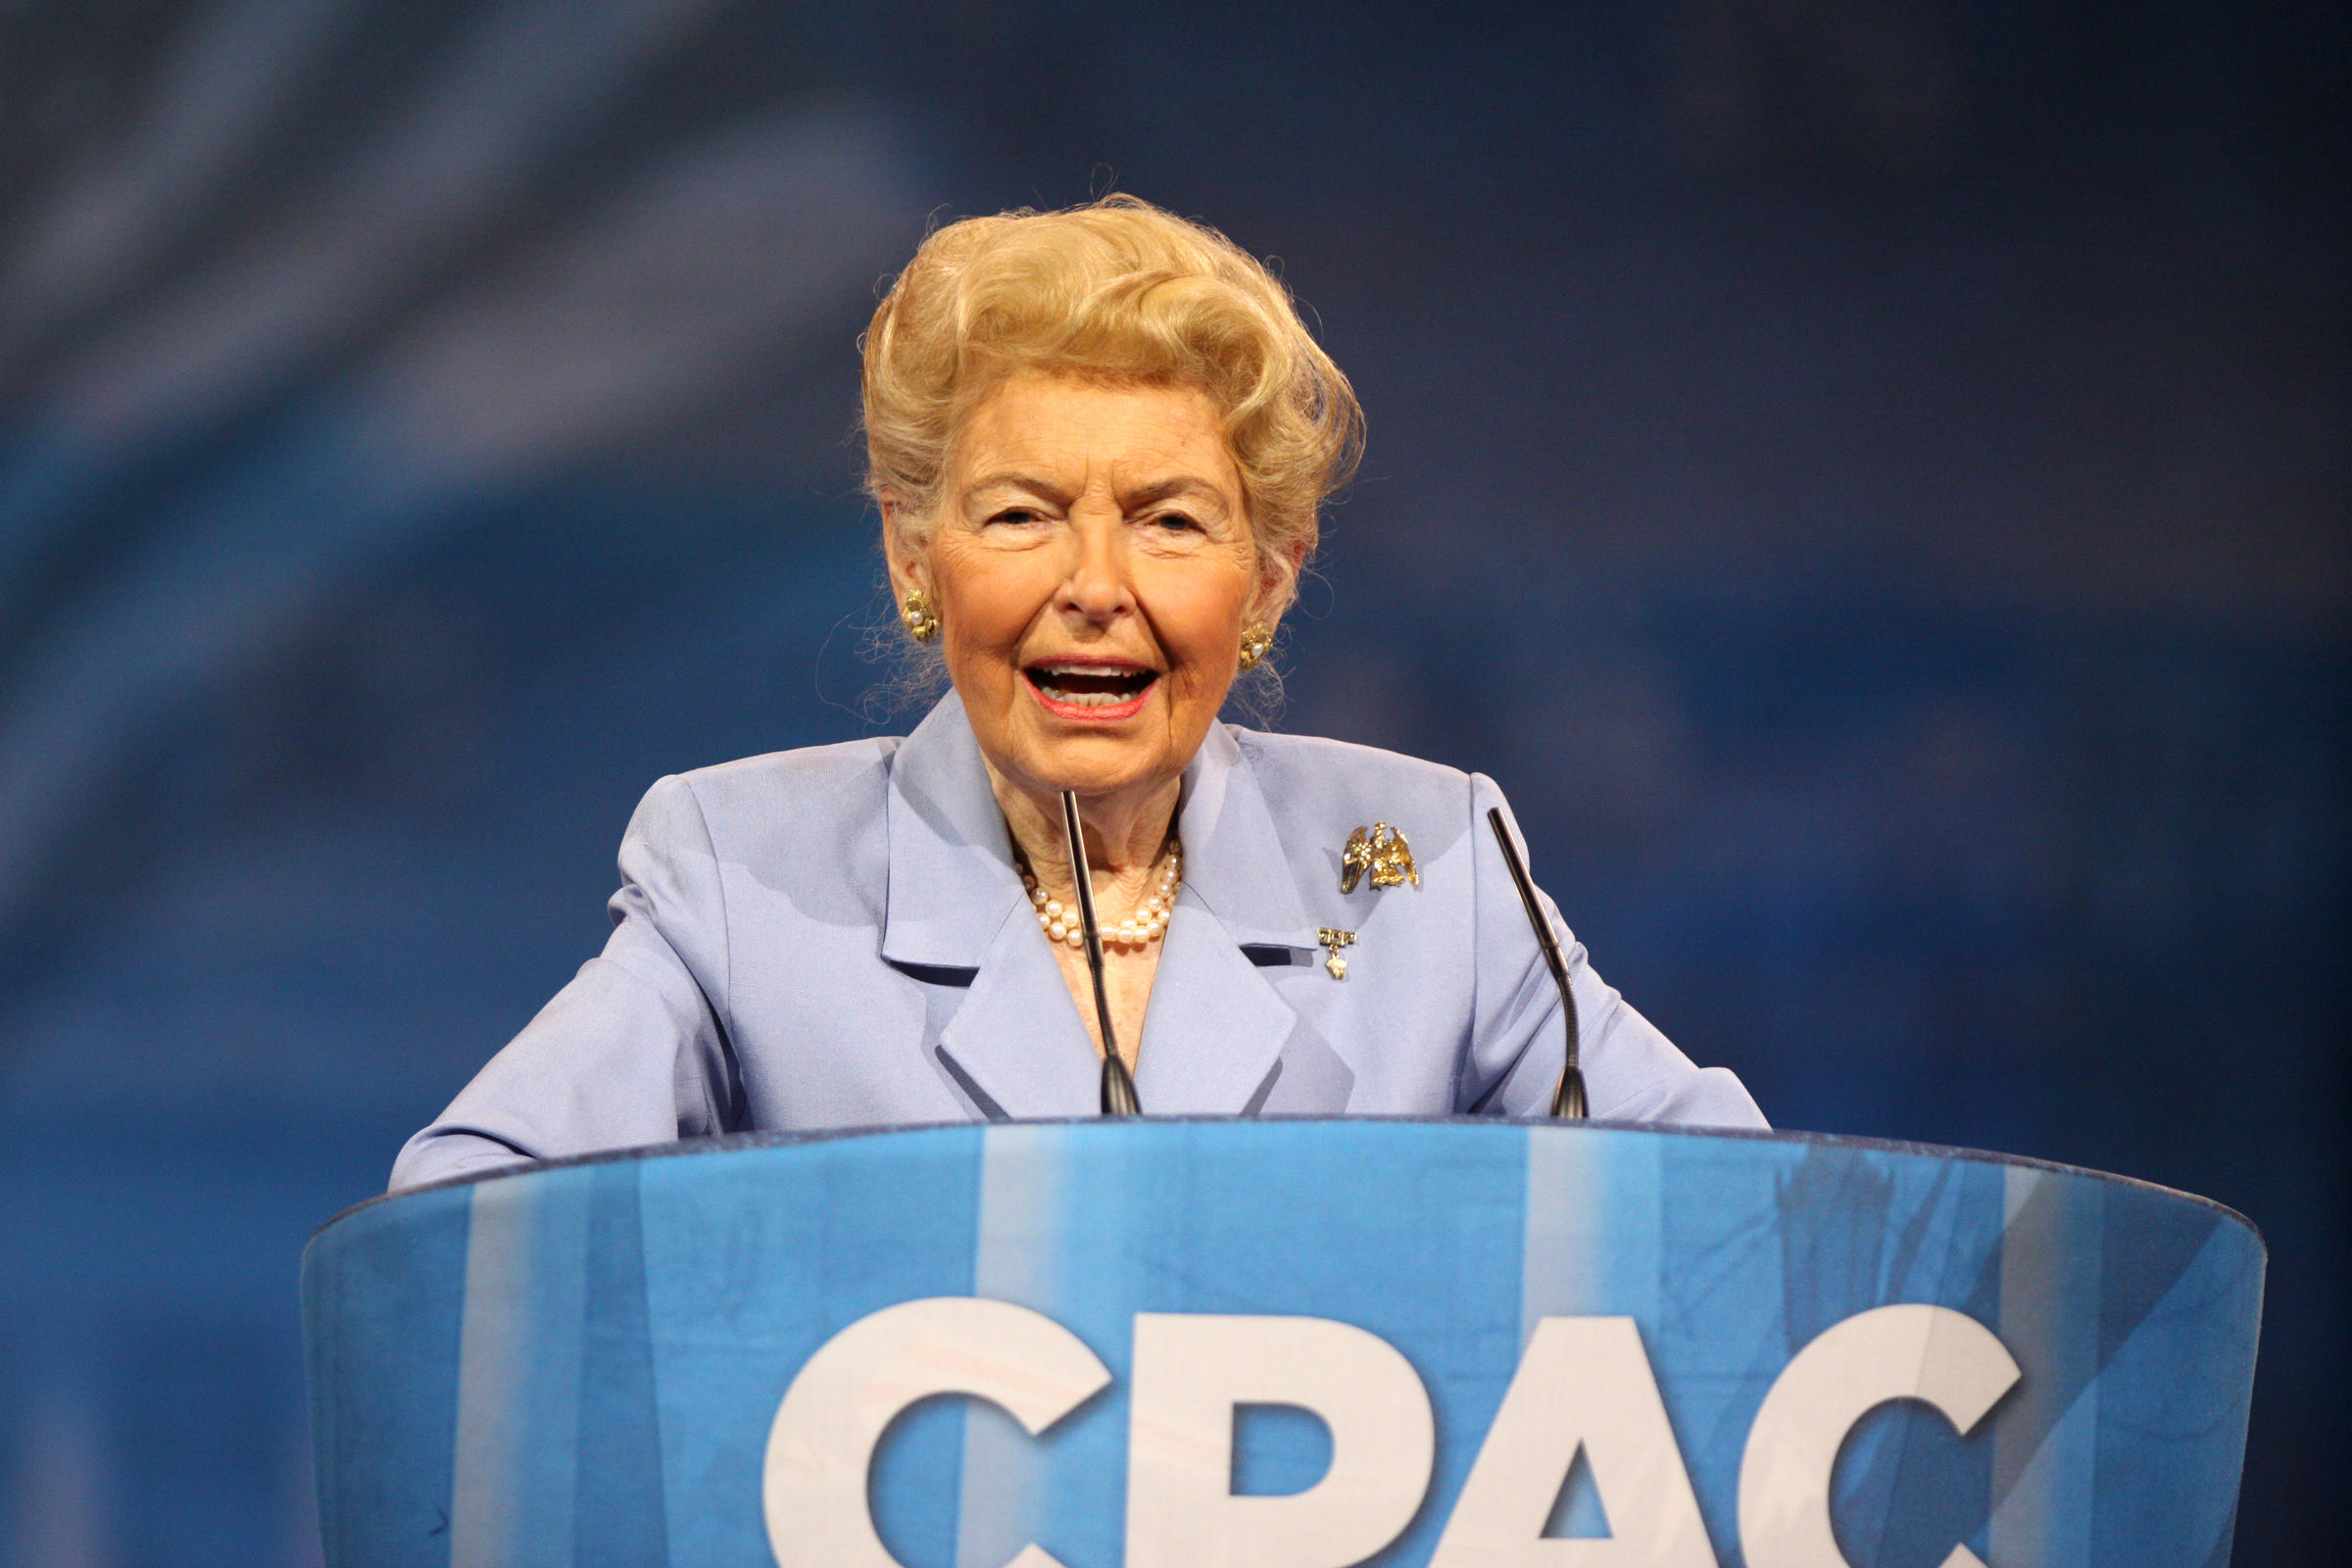 Phyllis Schlafly Speaking At The 2013 Conservative Political Action Conference Was A Significant Force For Views